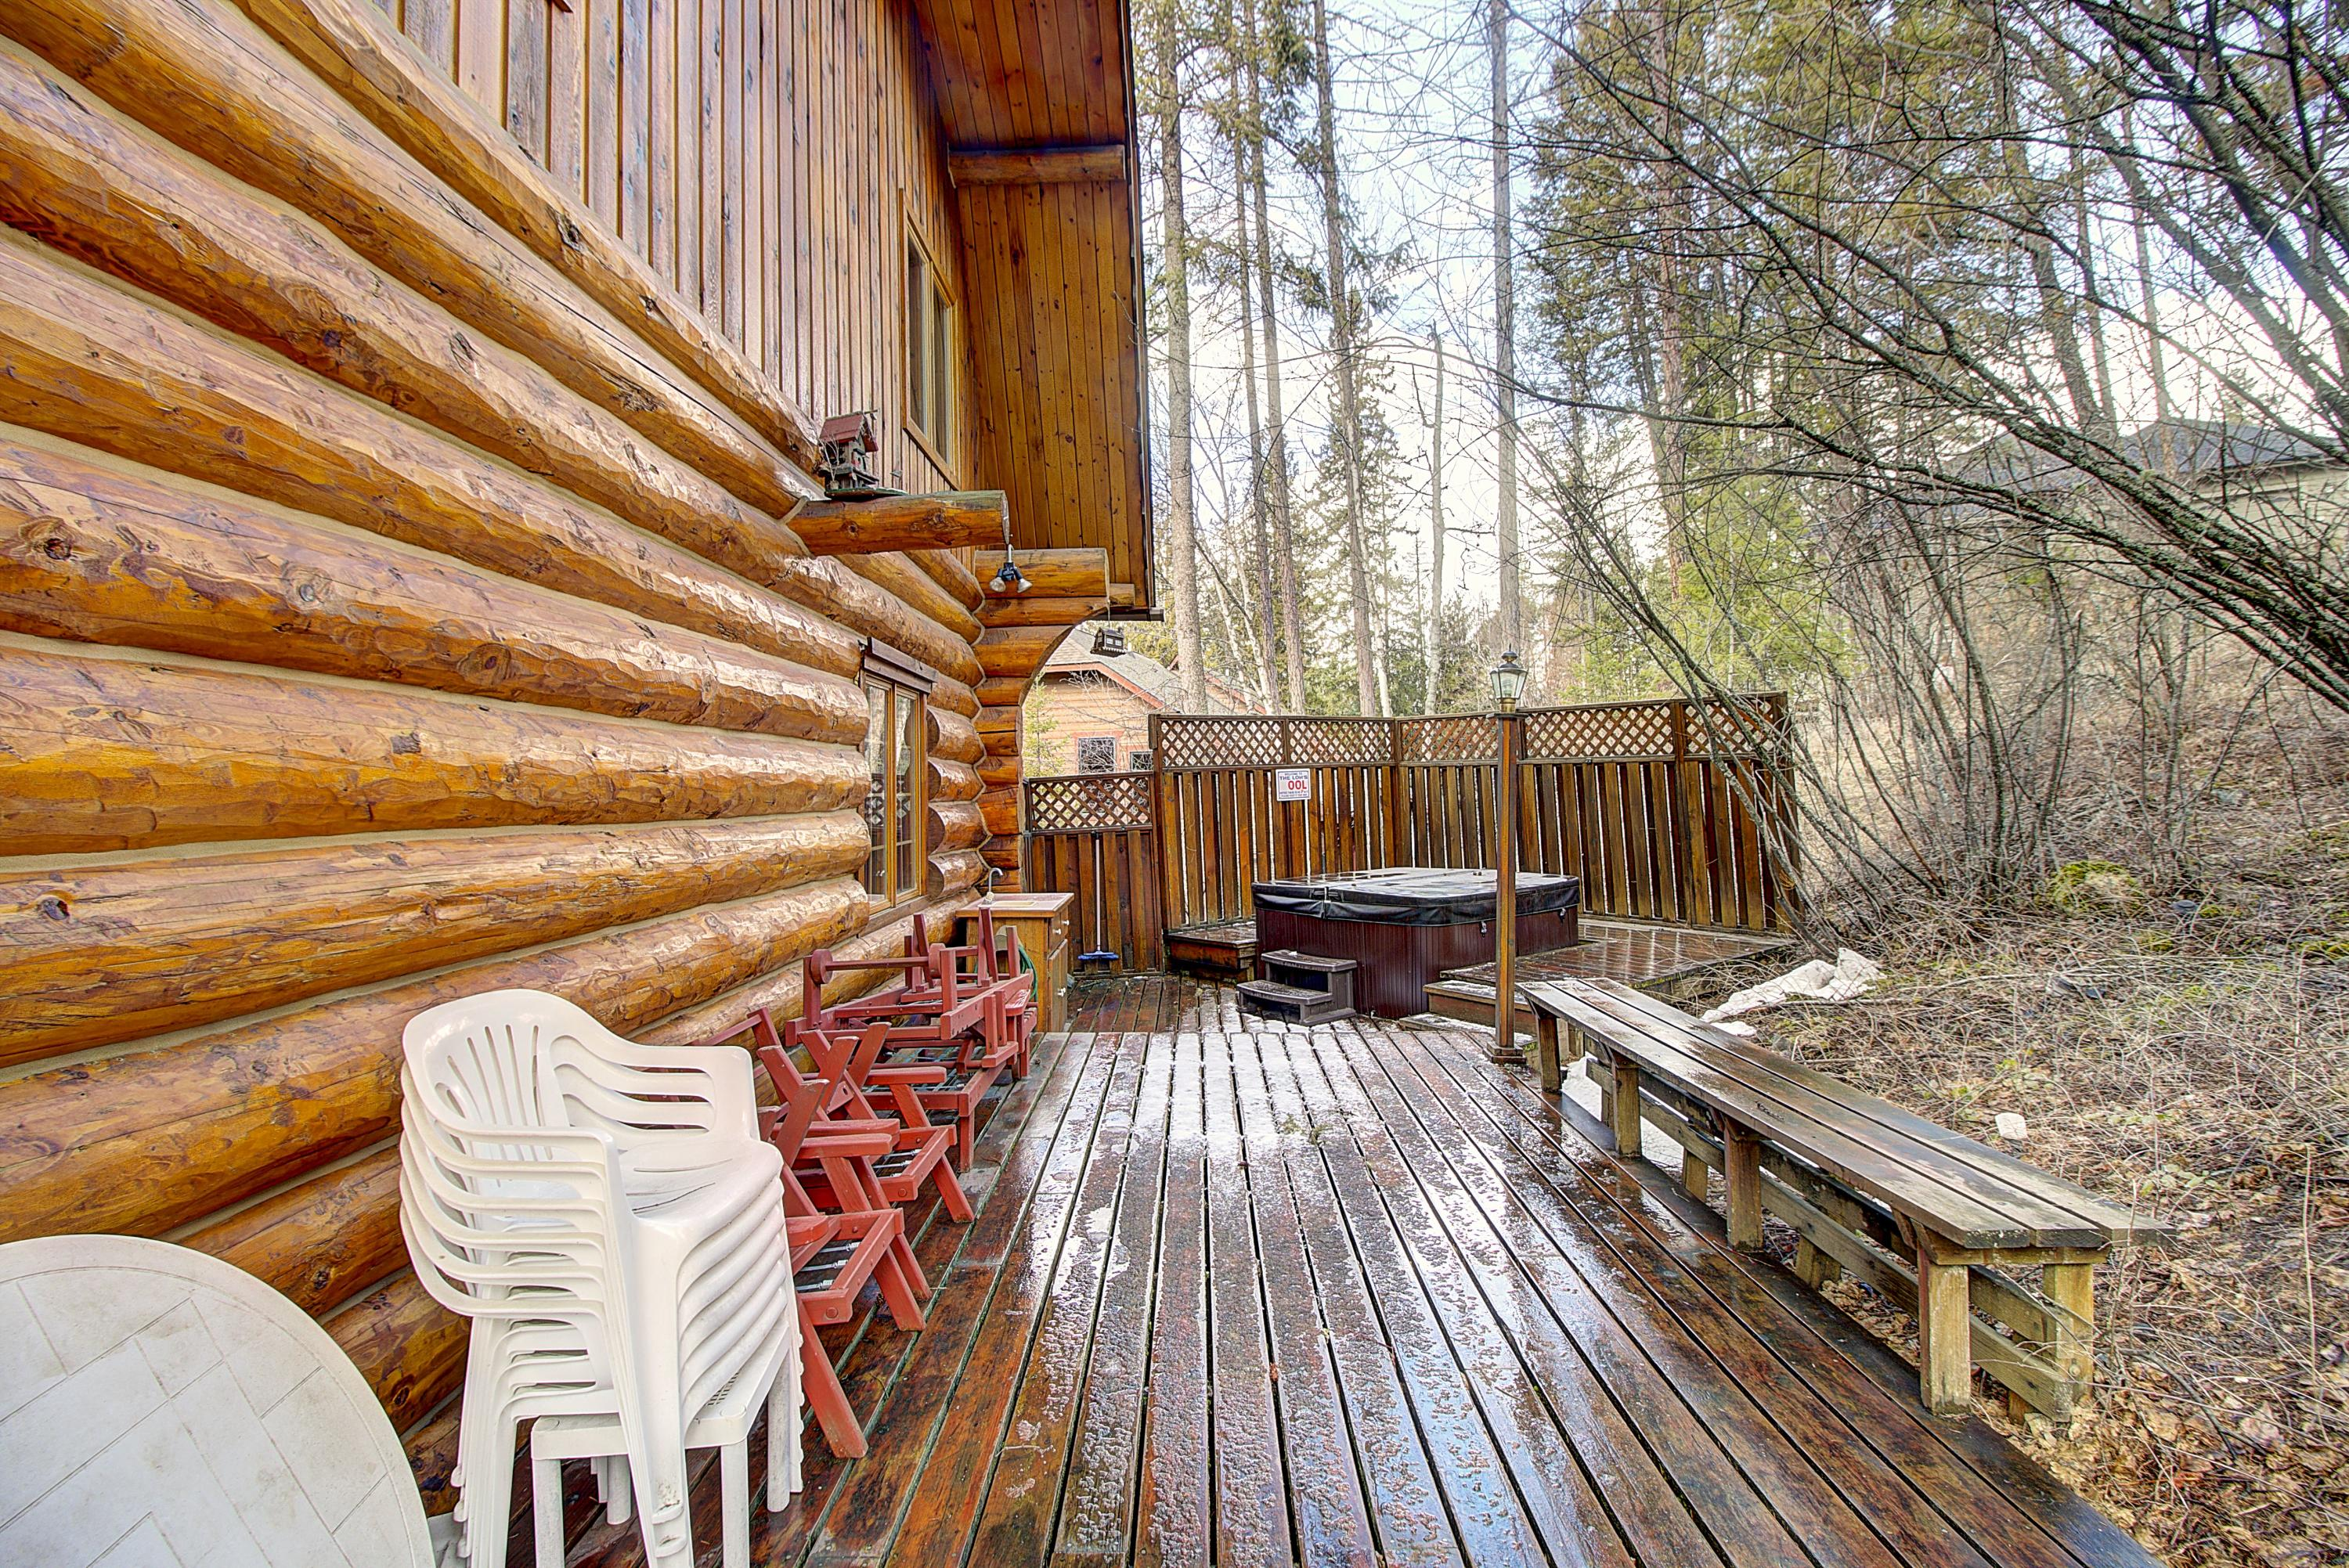 28.Spacious Deck in Back of Home with Ho